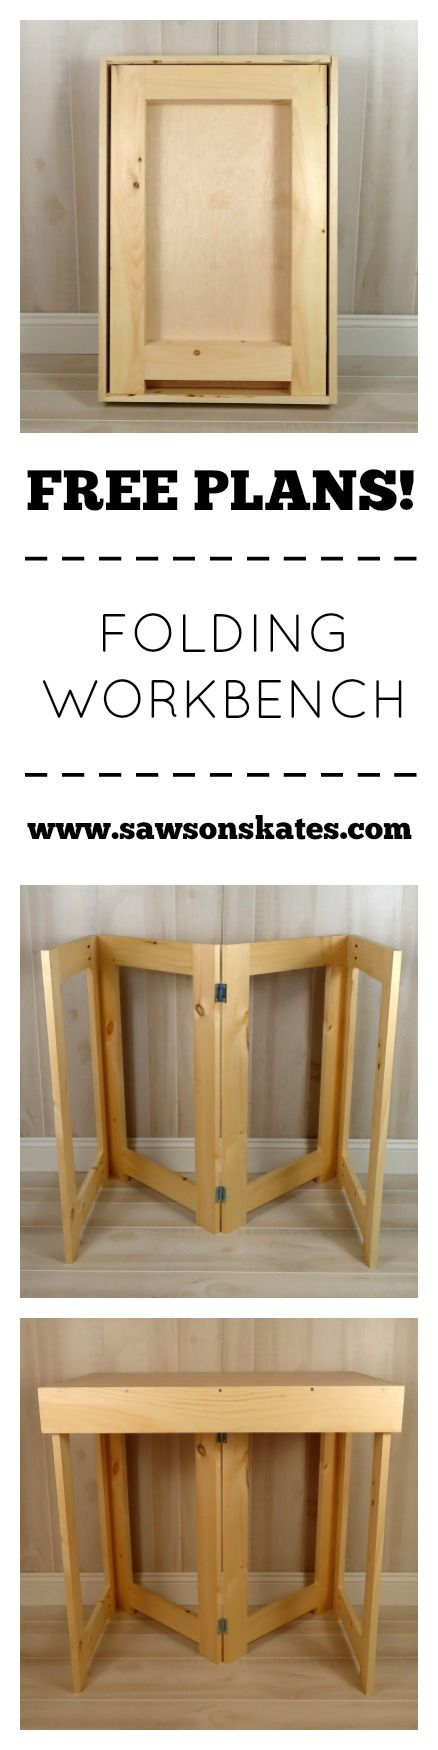 Searching For Folding Workbench Ideas Check Out These Free Diy Plans A Portable Go Anywhere Great Garages Or Works And Sy